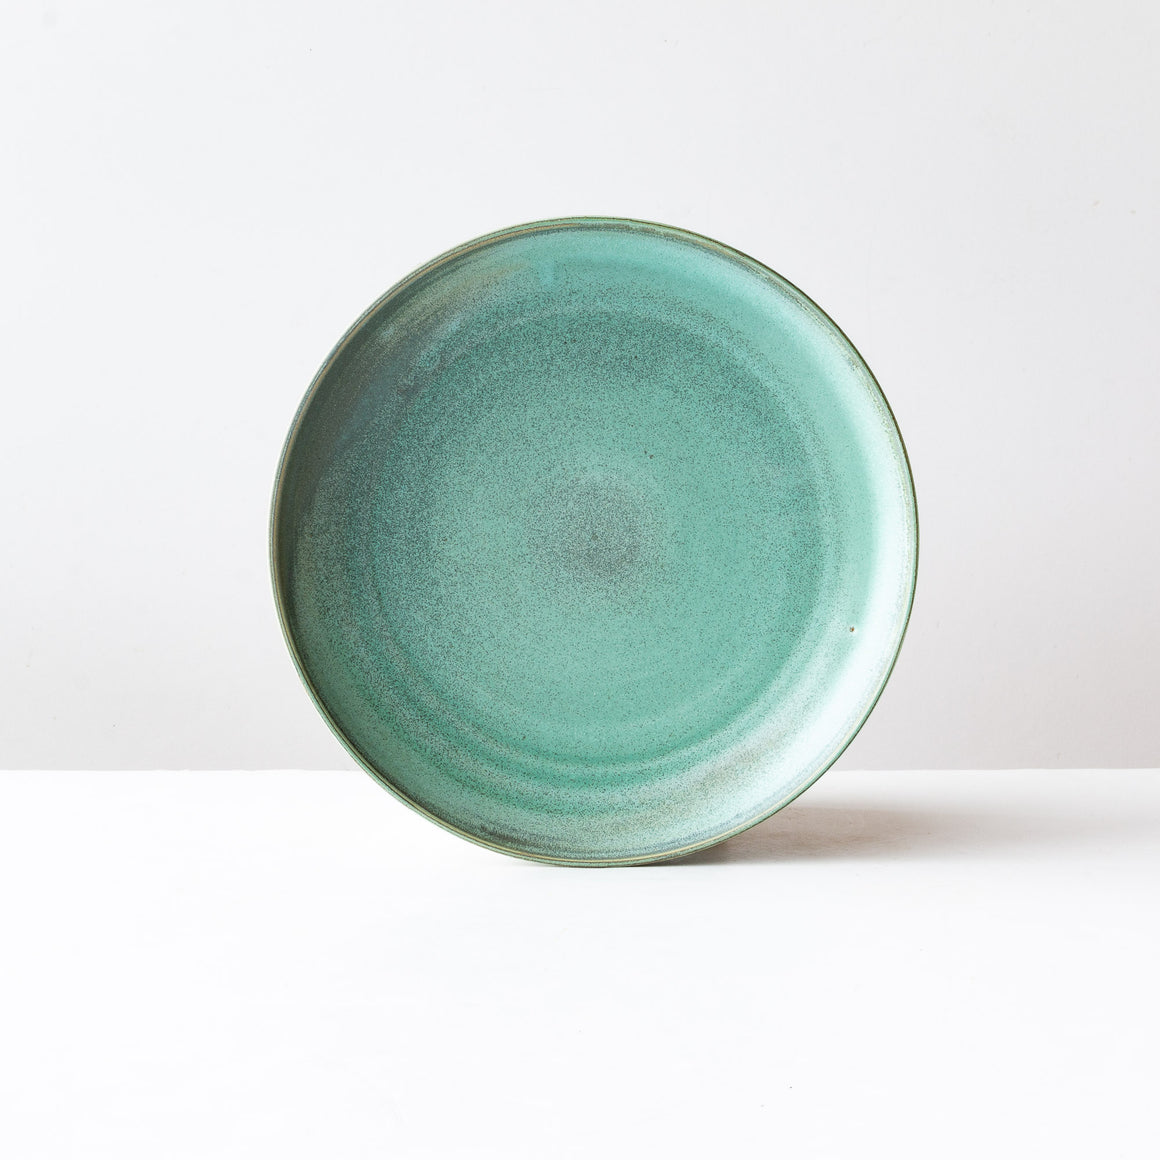 A Pile of Handmade Turquoise Ceramic Stoneware Dinner Plates - Sold by Chic & Basta